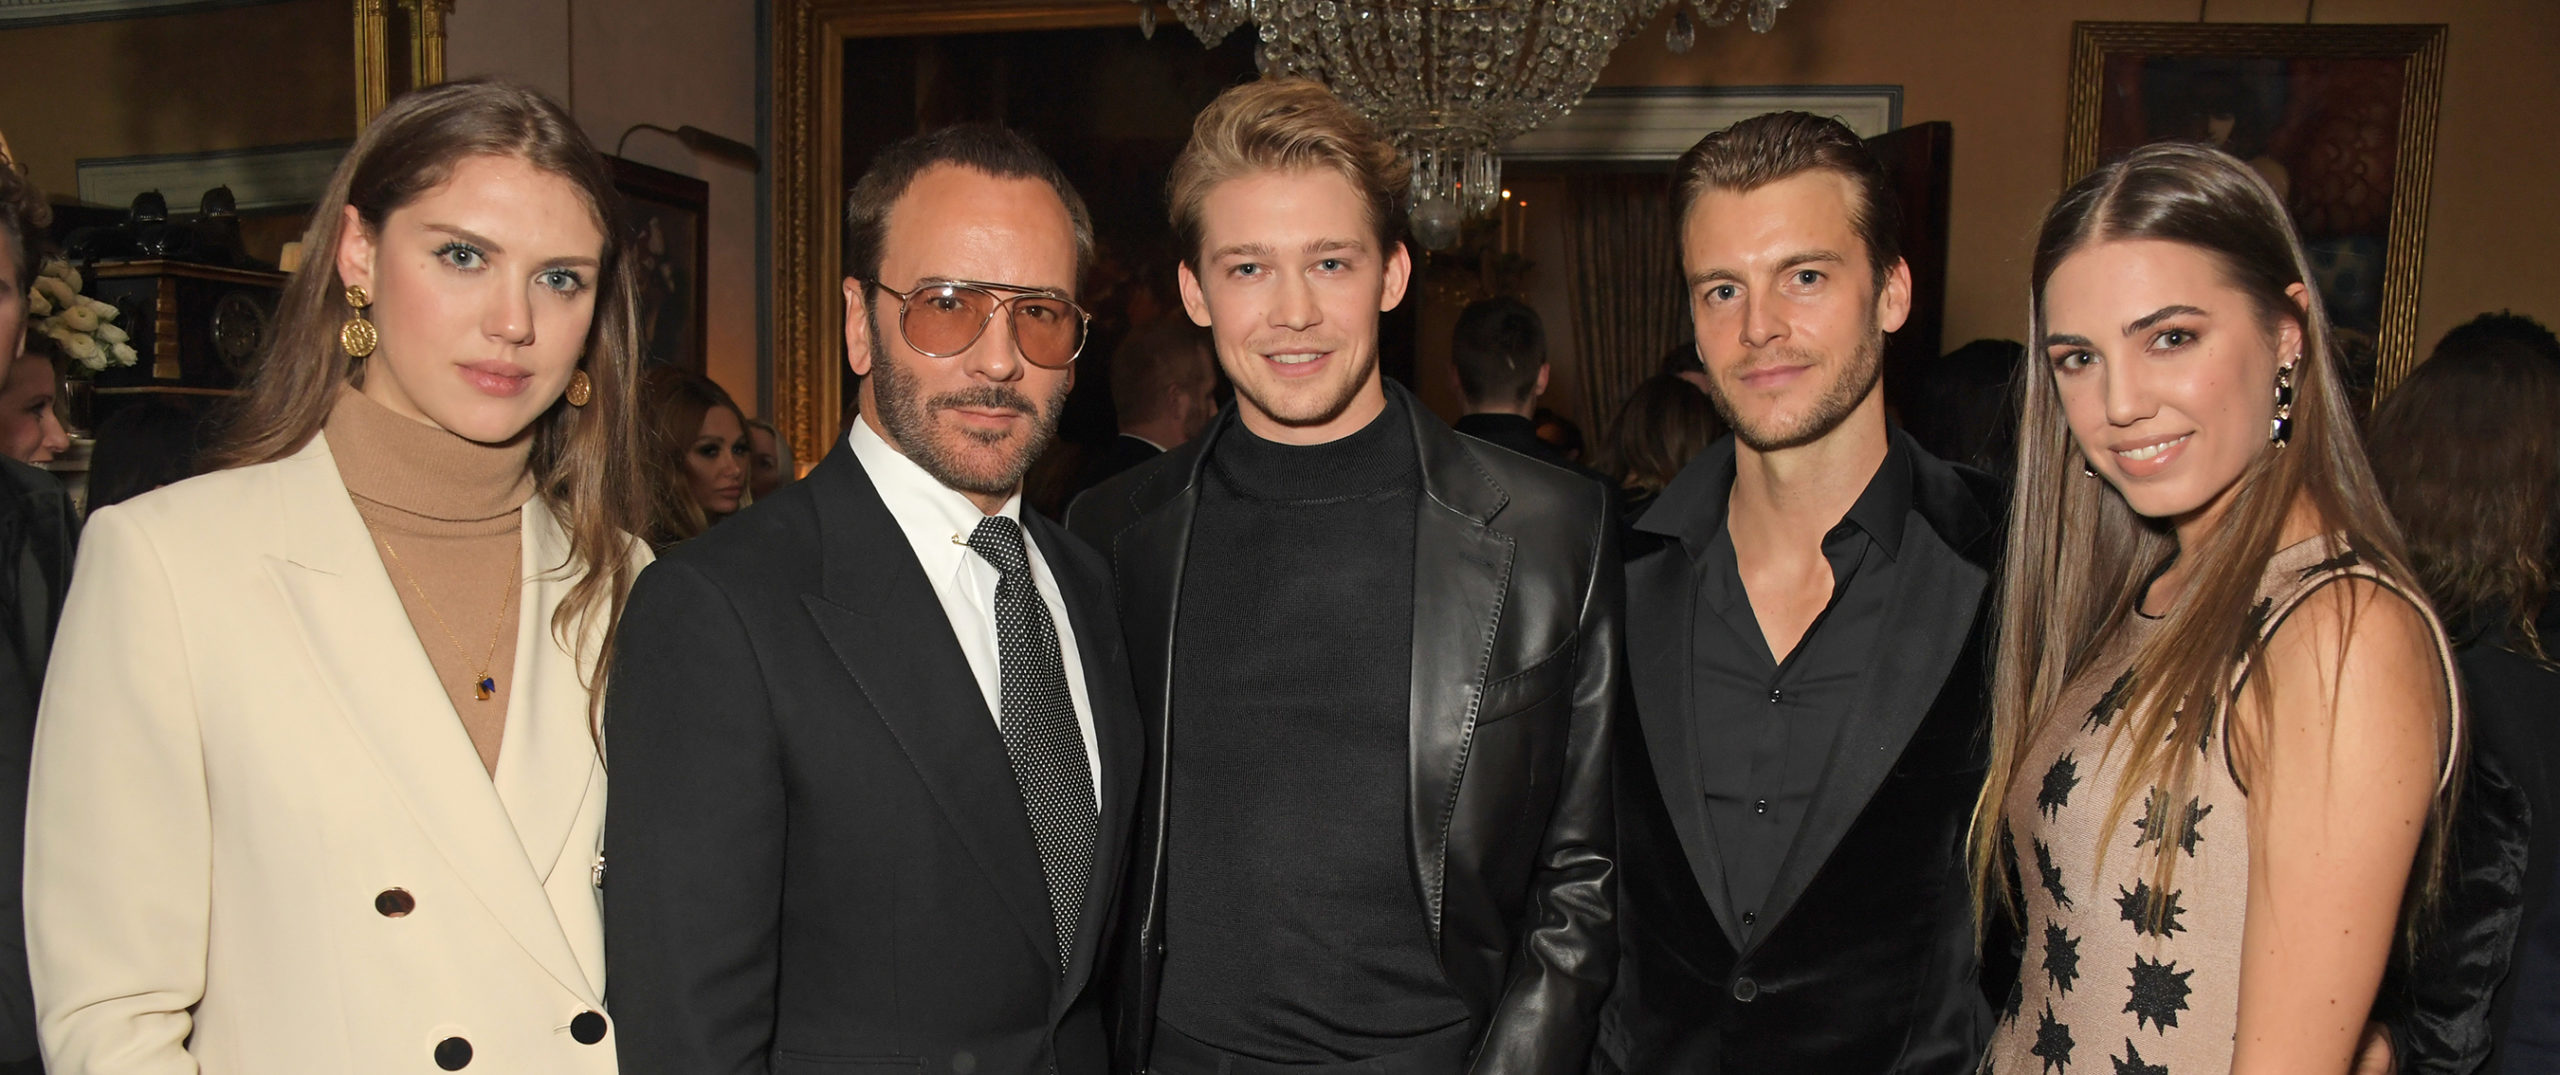 The Diary: Inside the Tom Ford Beau de Jour fragrance launch party